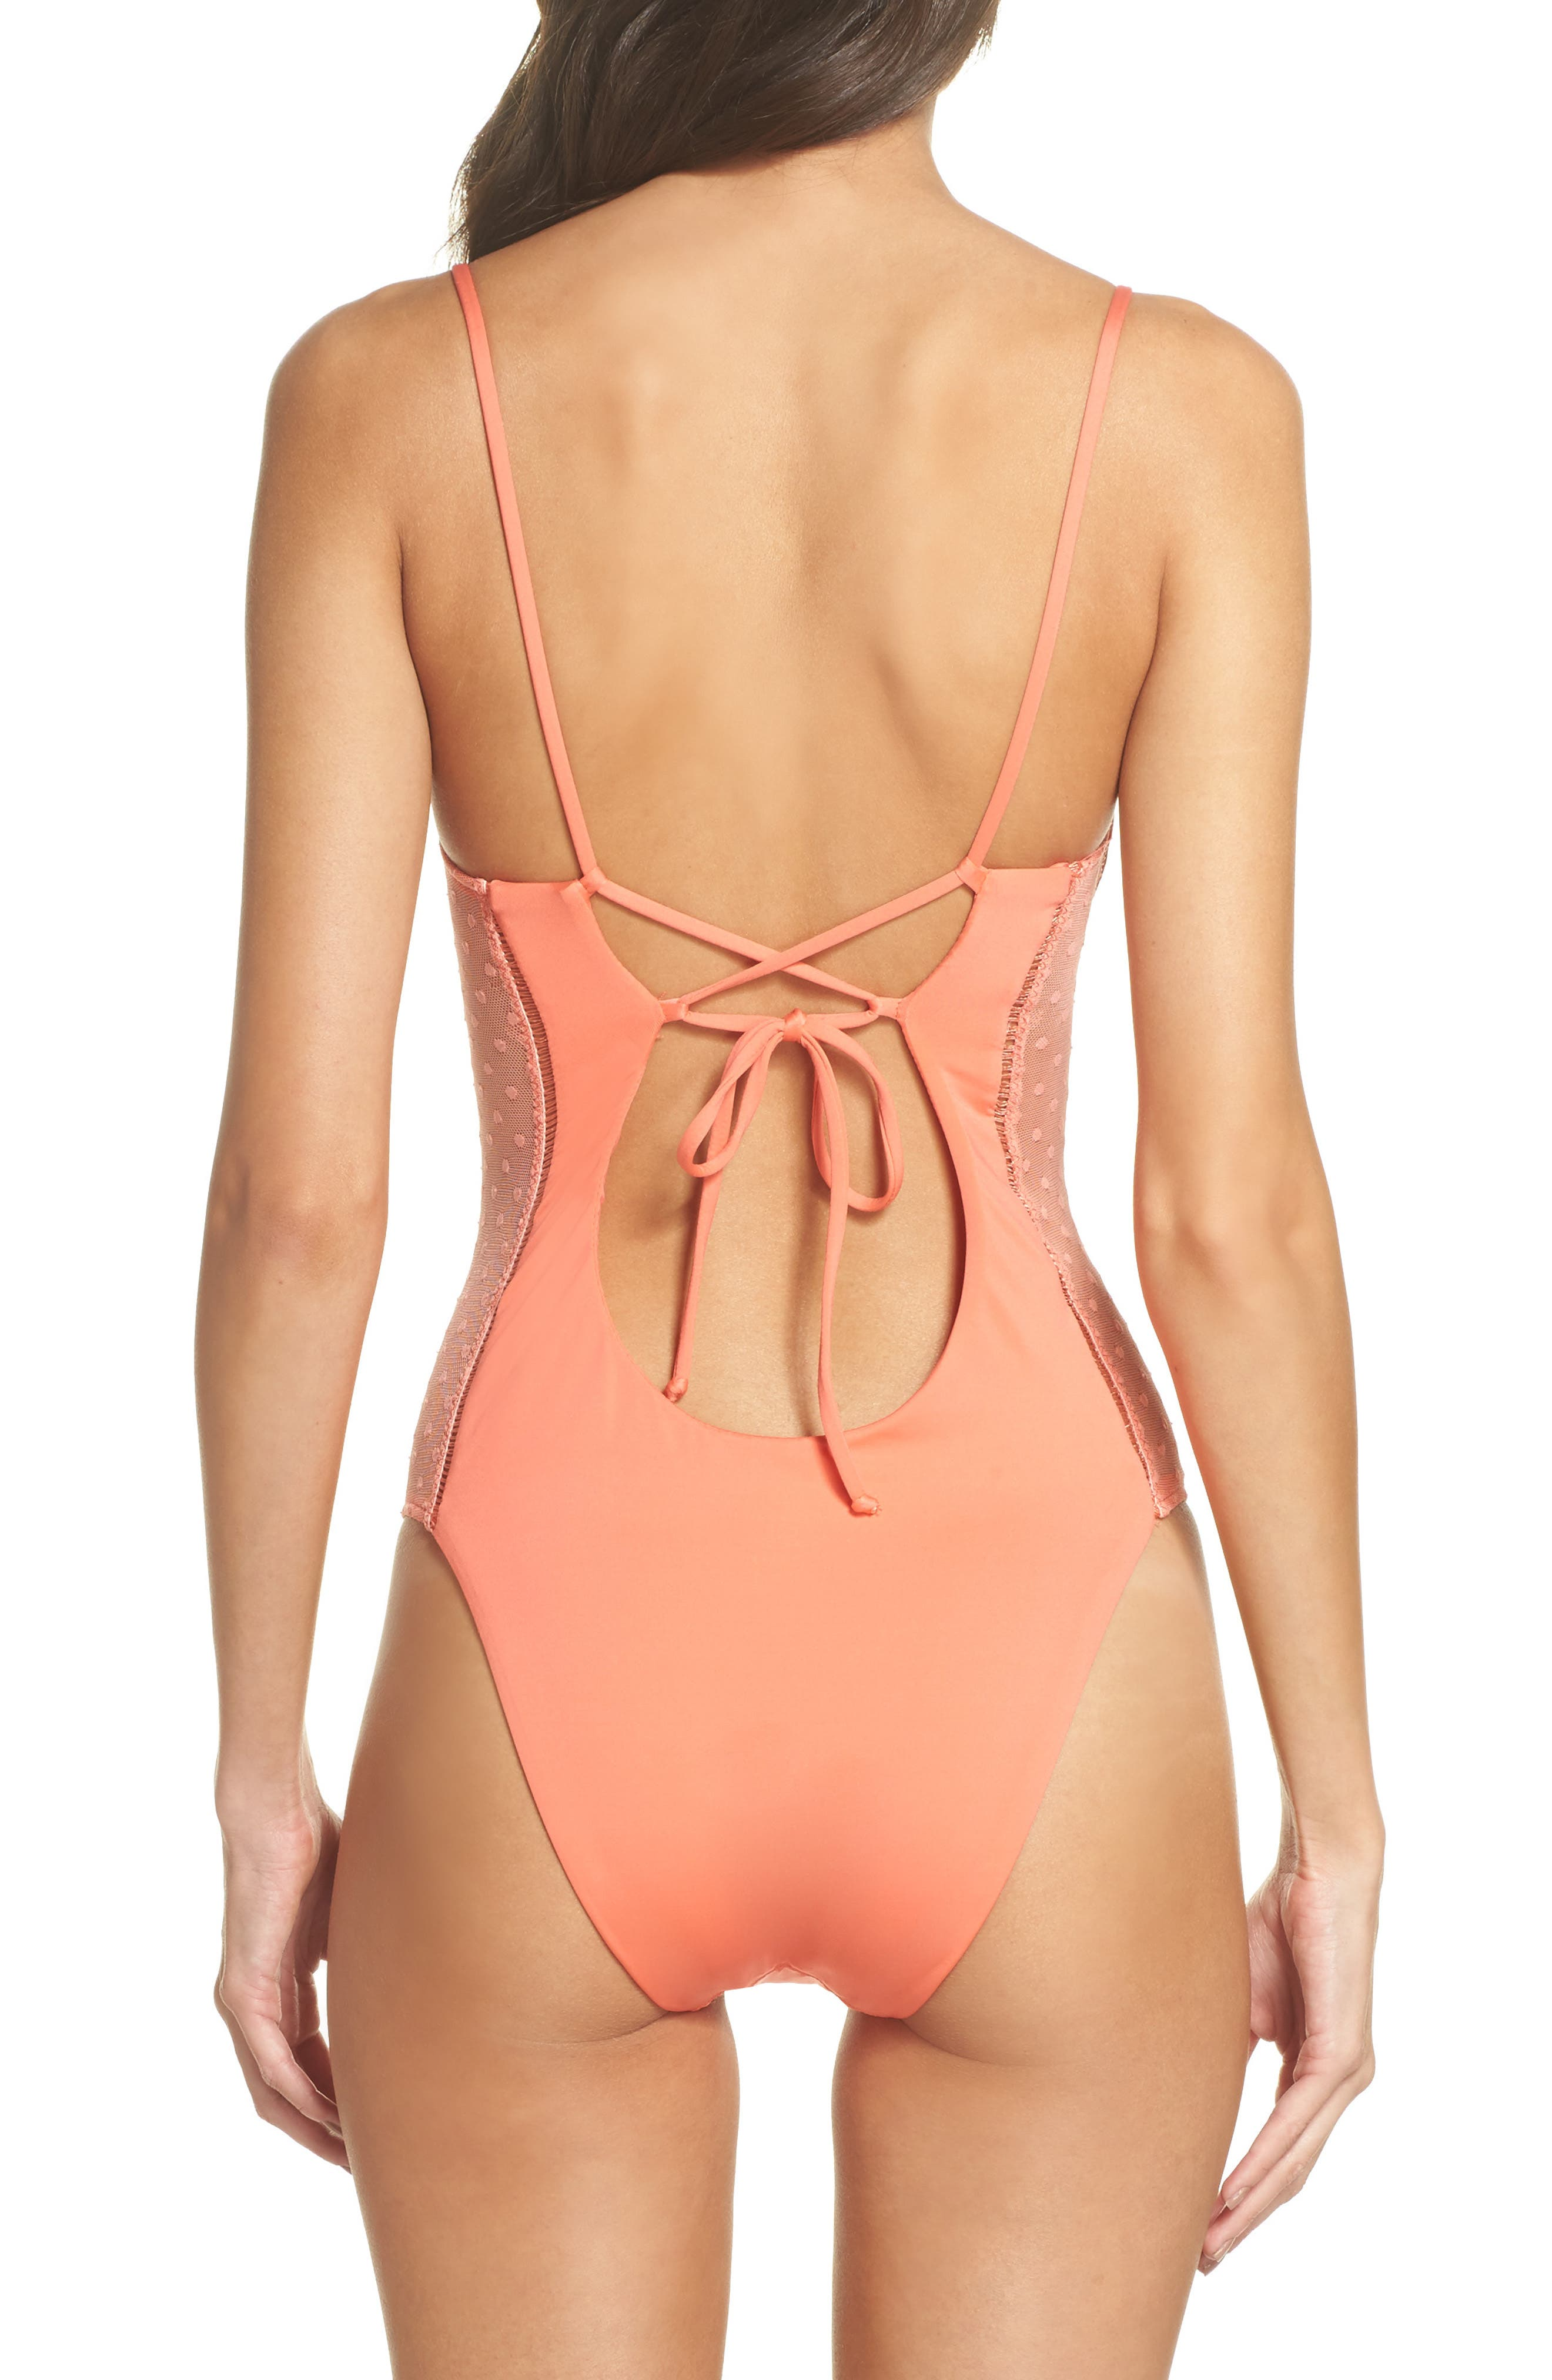 Swiss Miss One-Piece Swimsuit,                             Alternate thumbnail 2, color,                             Persimmon